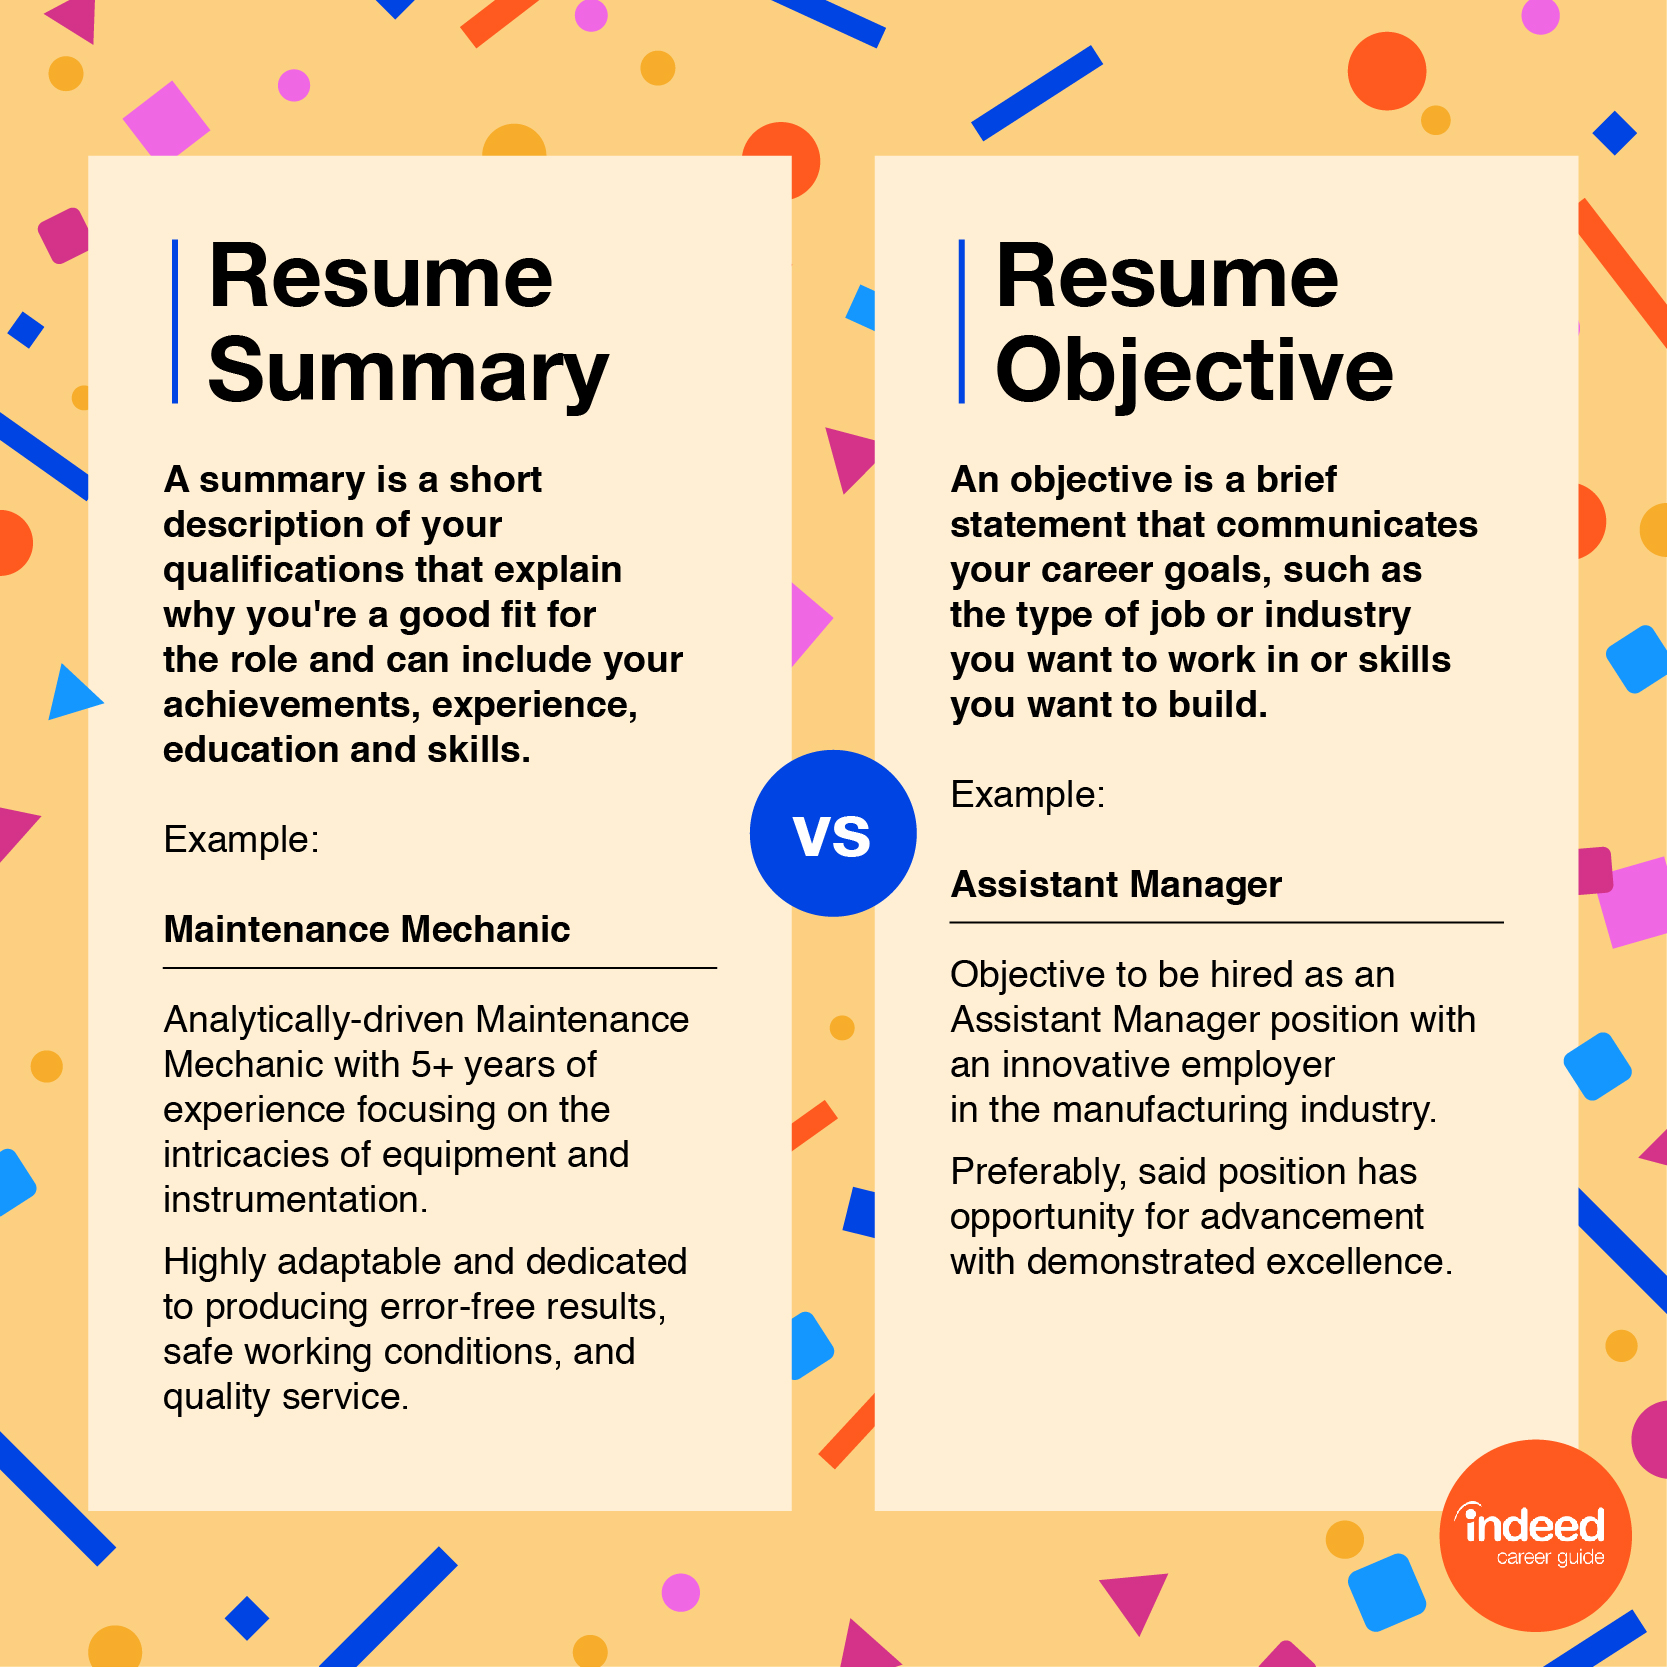 resume summary guide examples indeed great for v4 linkedin help firefighter tips photo Resume Great Summary For Resume